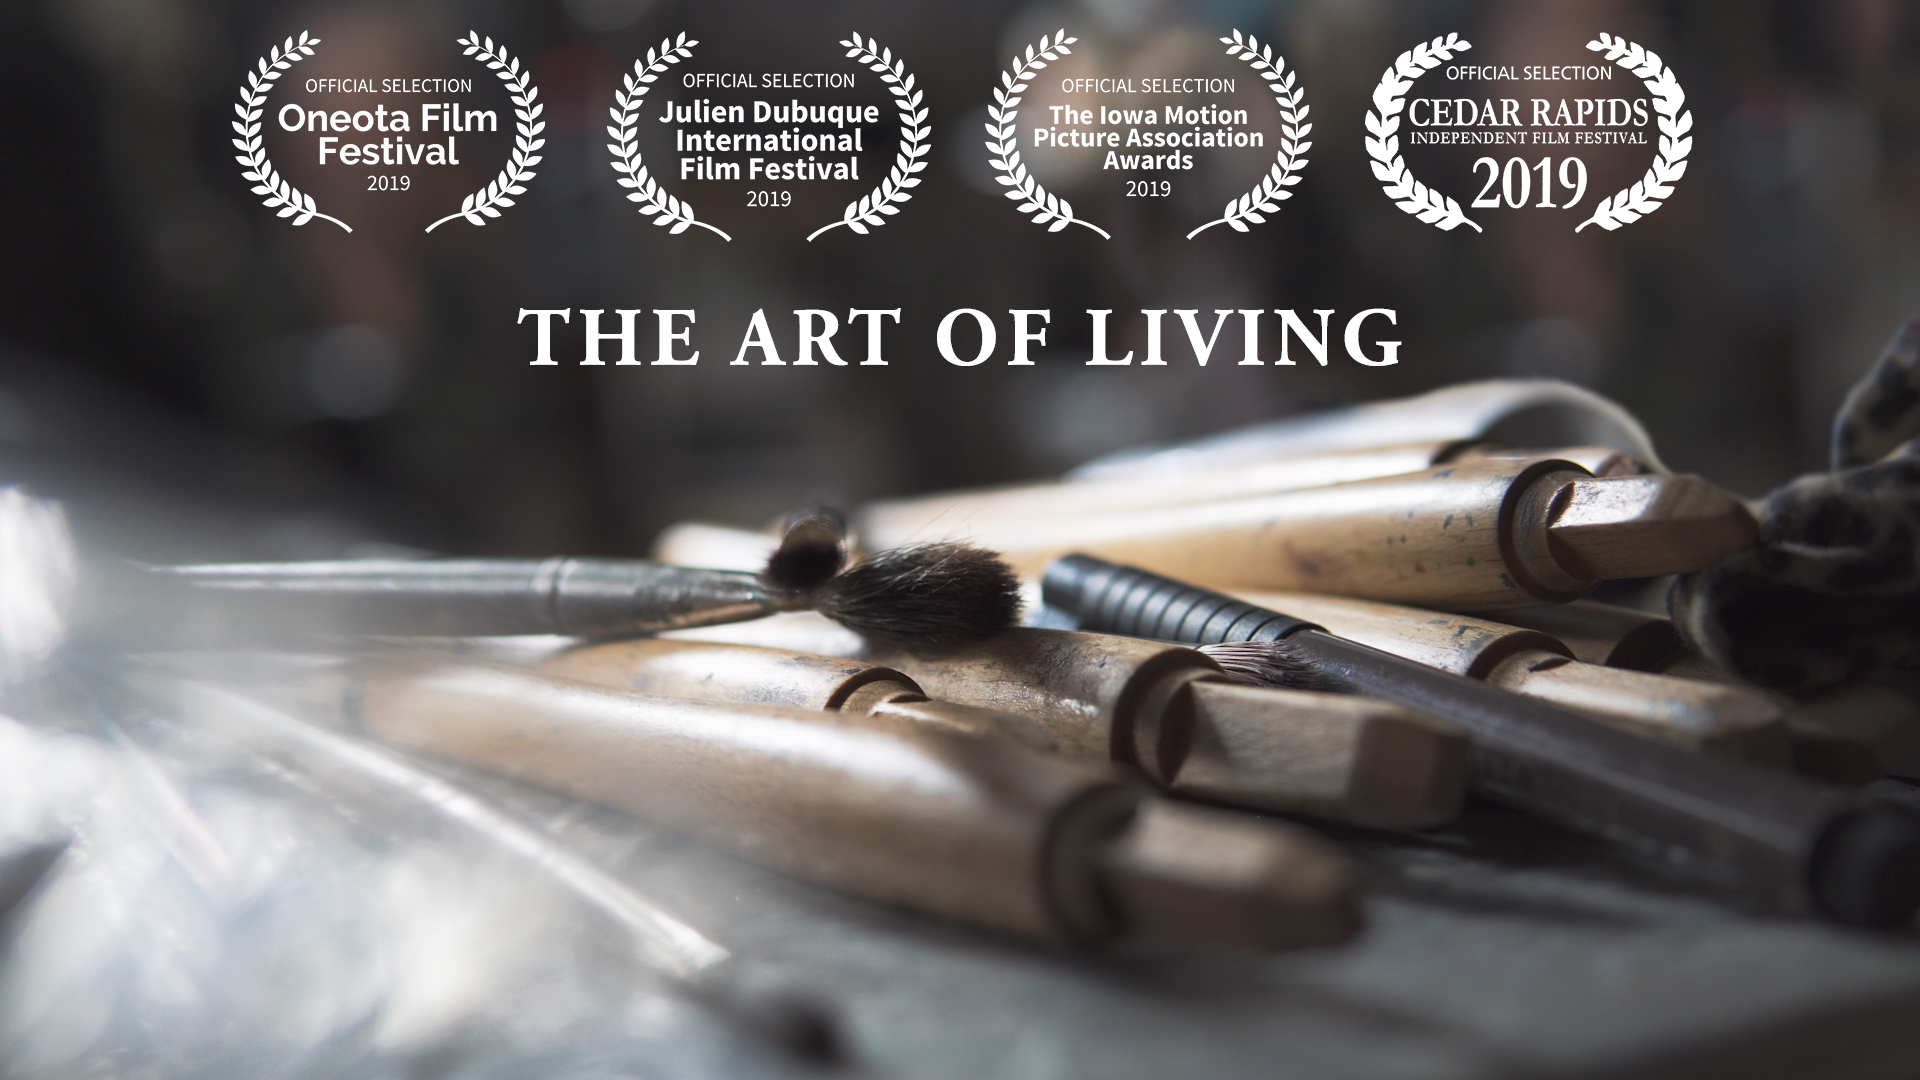 The Art of Living Poster.jpg